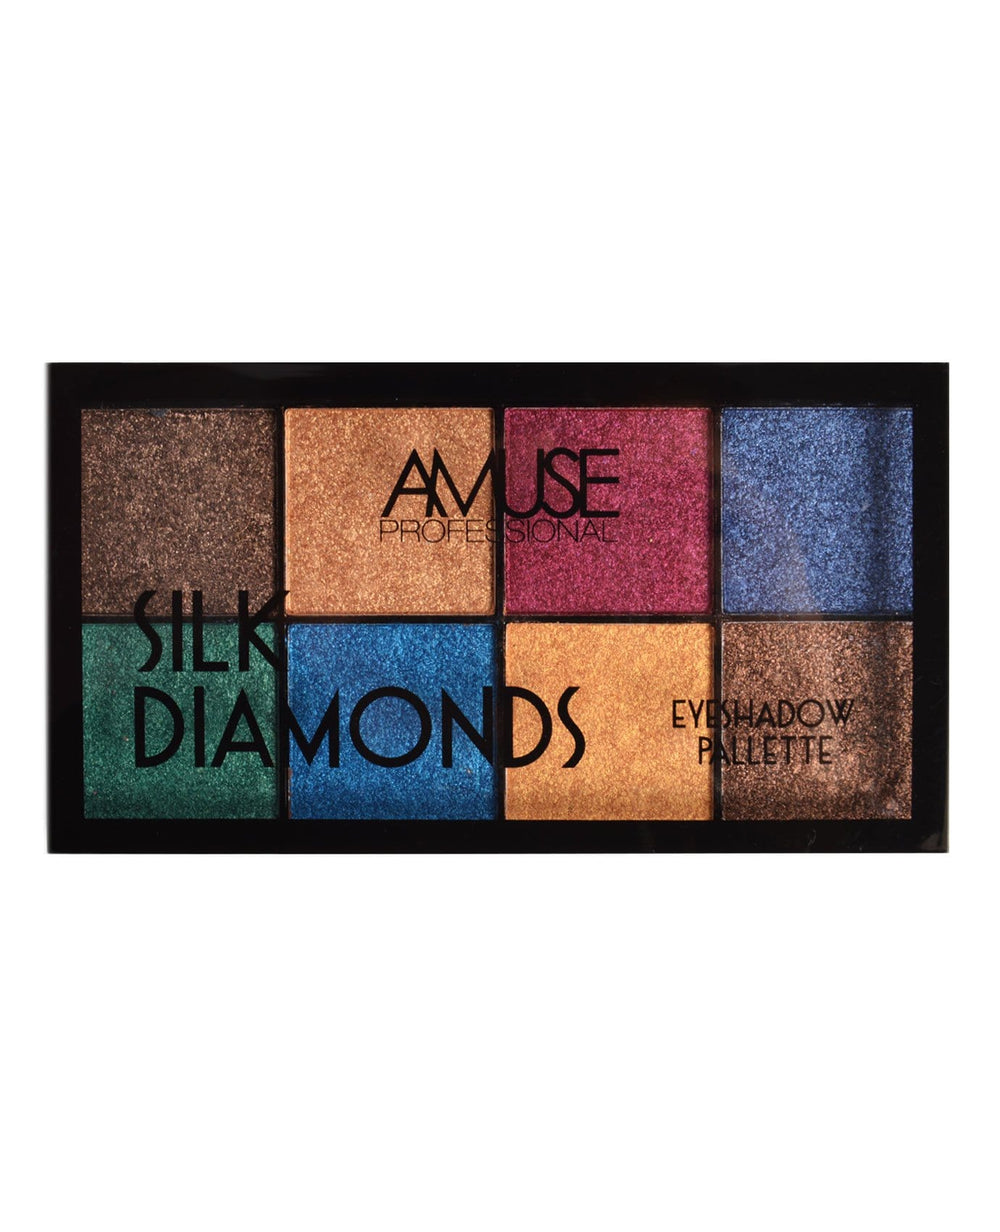 Amuse Silk Diamonds Eyeshadow Palette